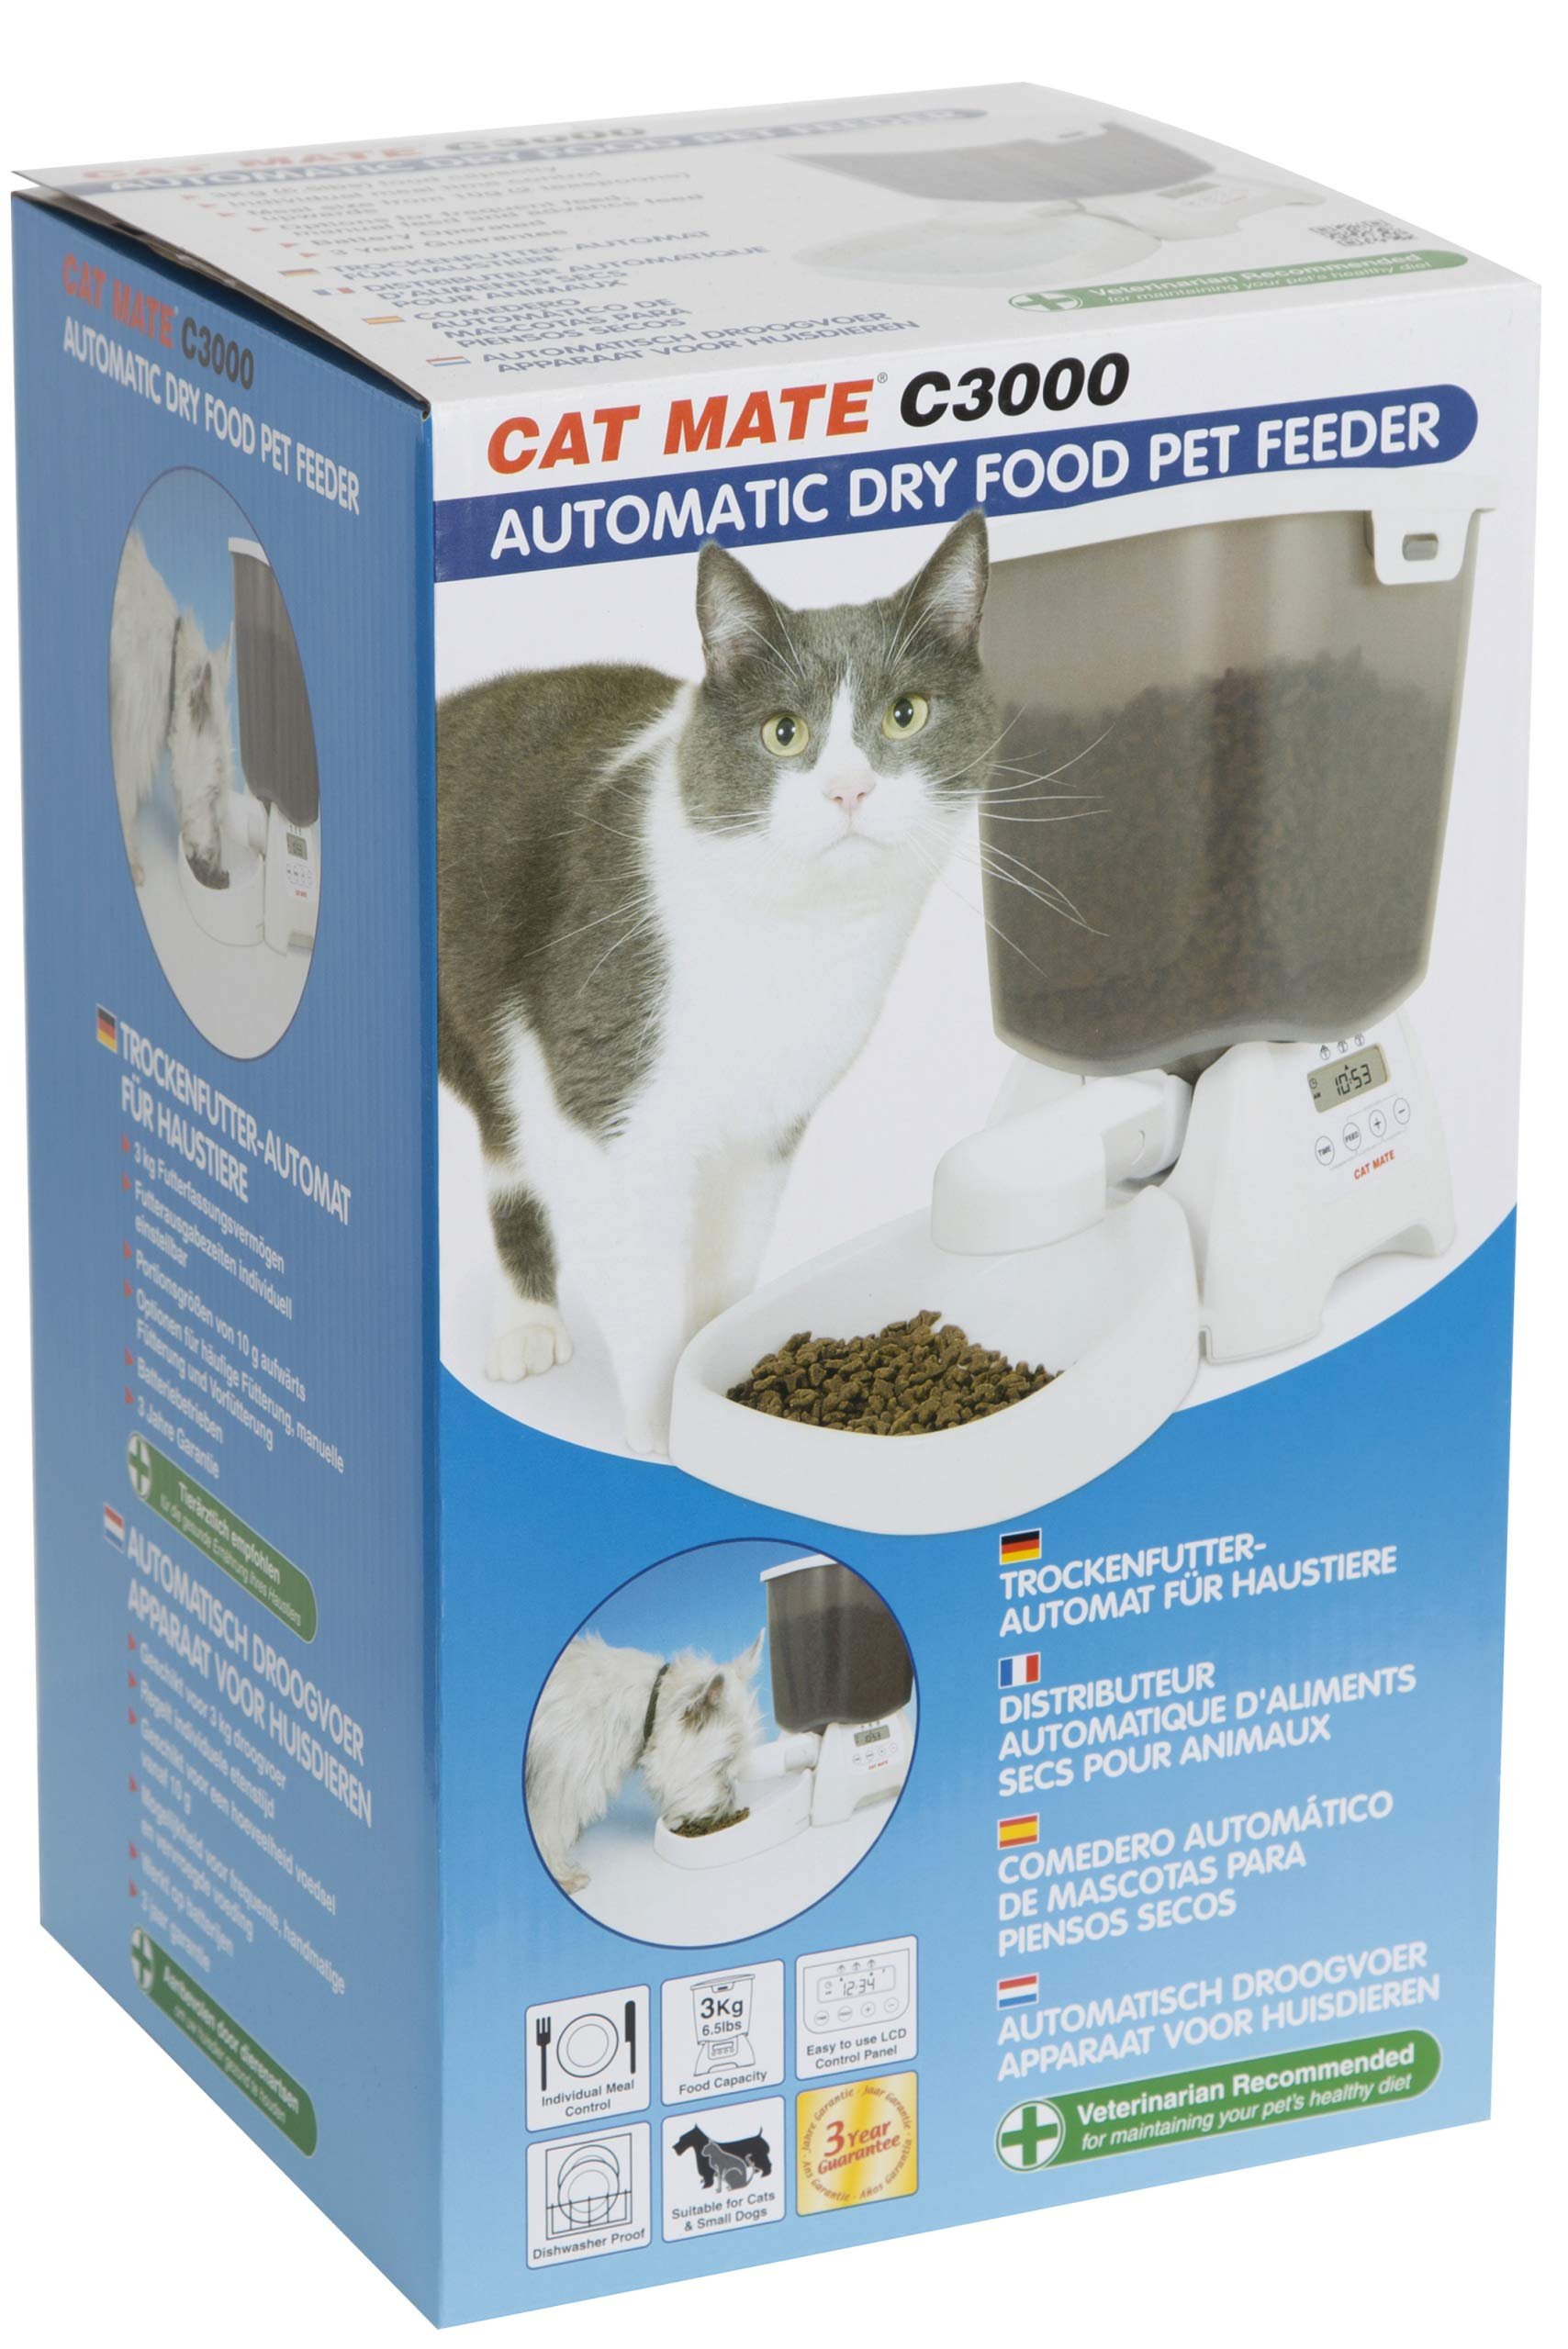 Cat Mate C3000 Automatic Dry Food Pet Feeder by Cat Mate